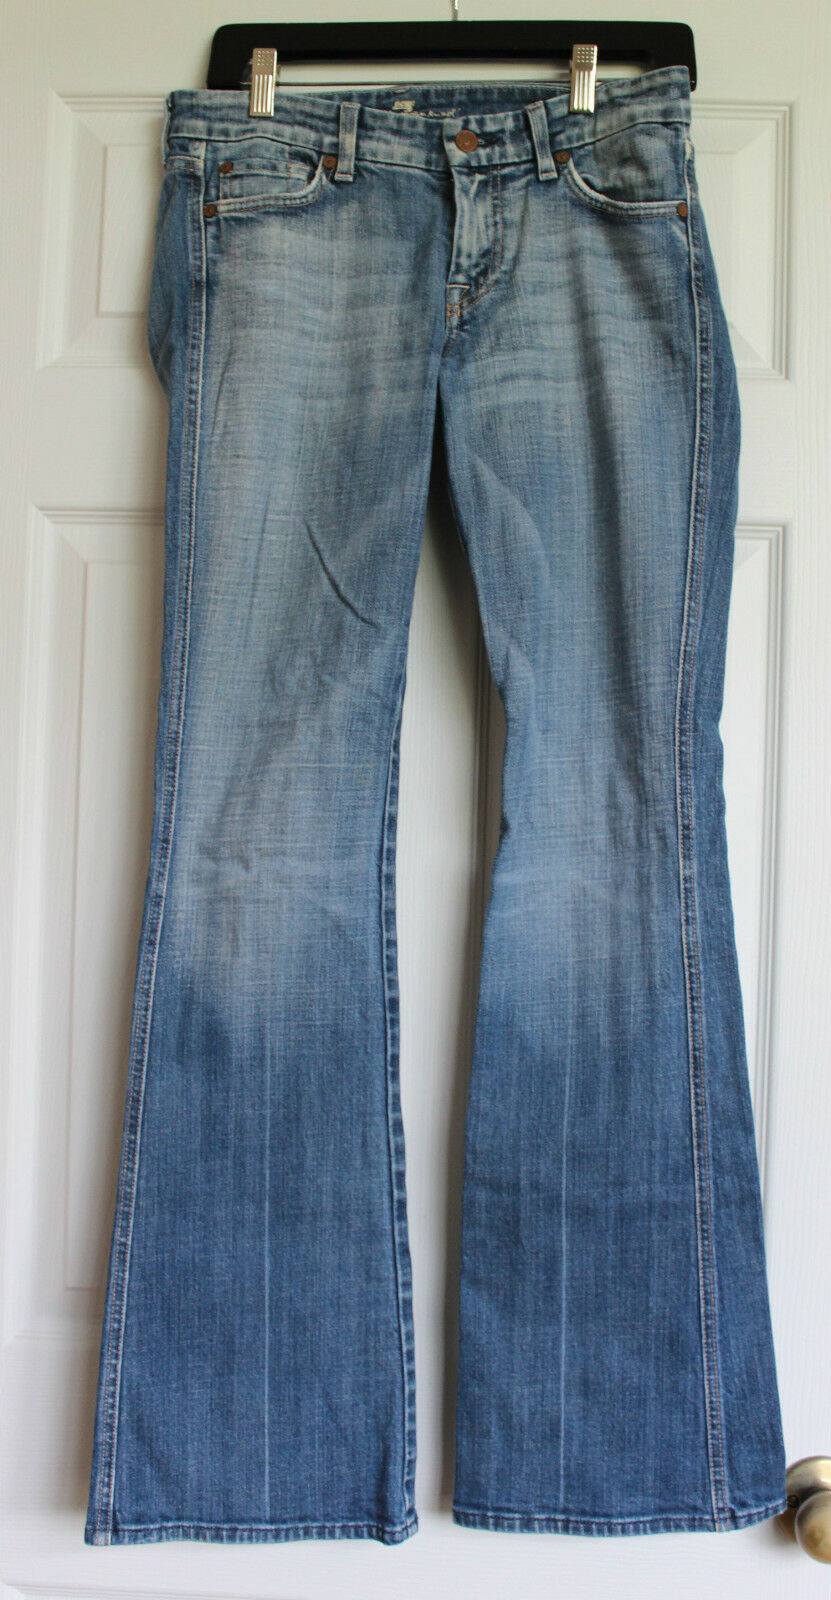 7 for ALL MANKIND jeans denim. sz 29. Authentic